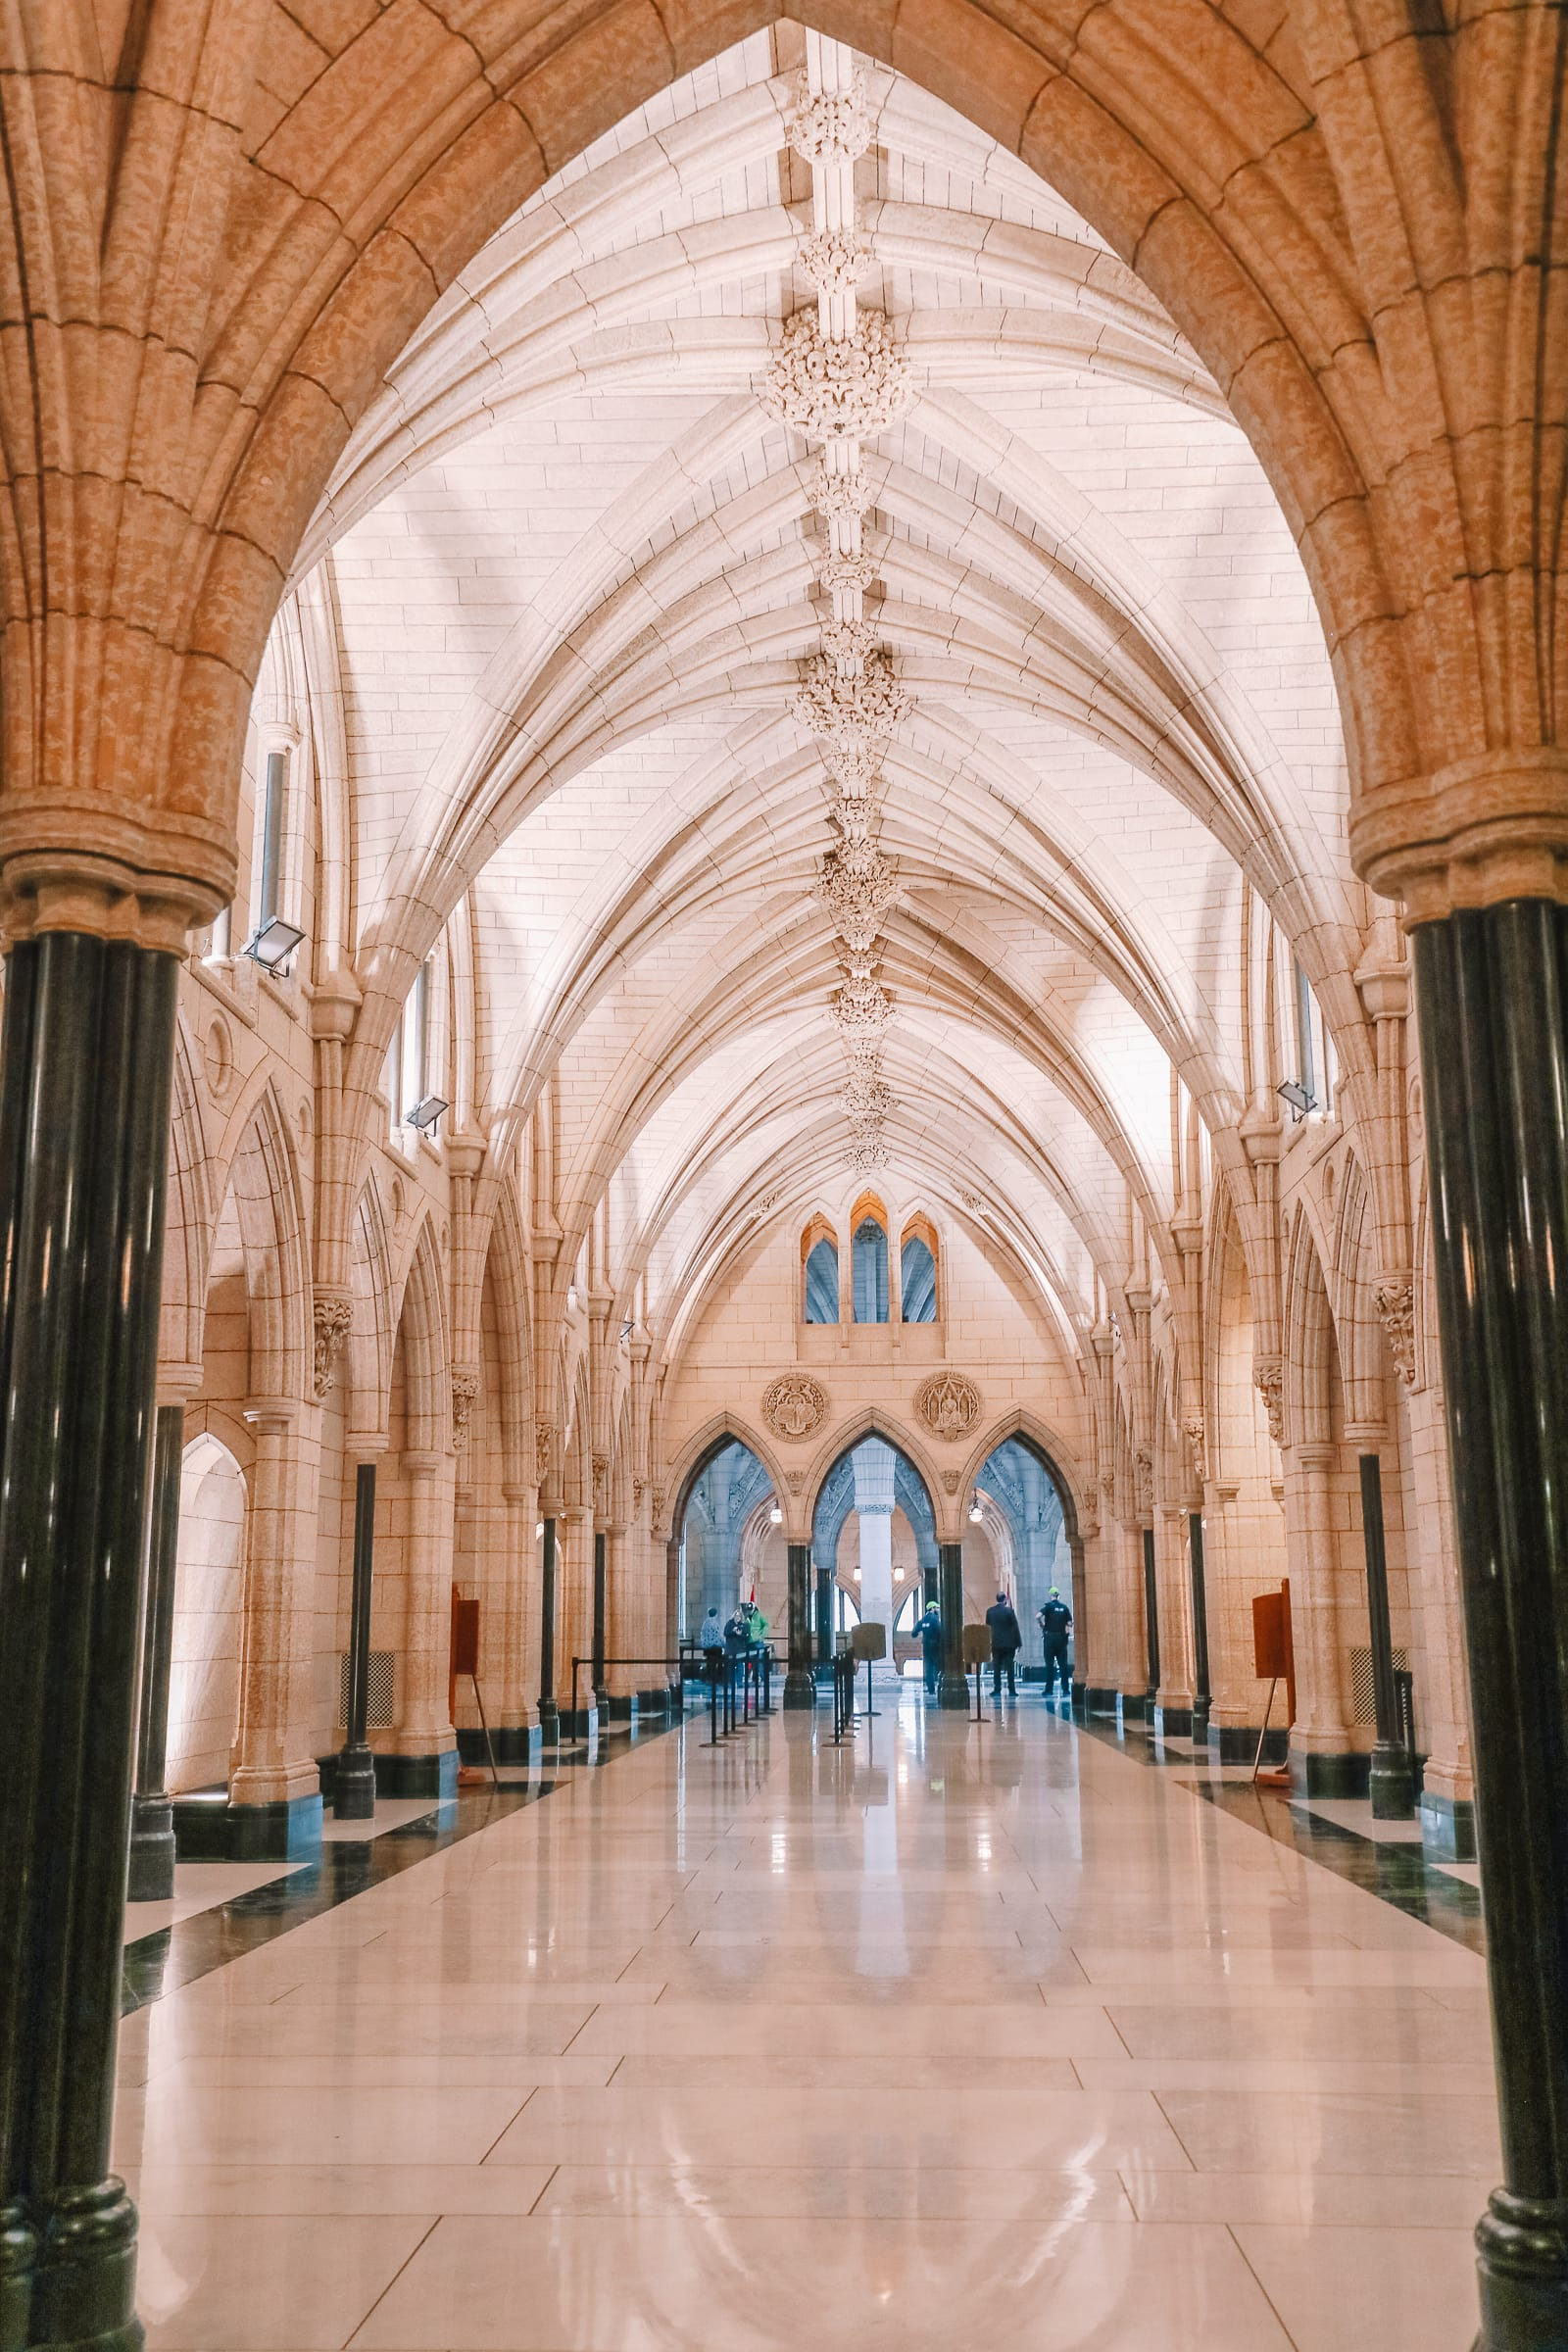 Visiting The Parliament Of Canada (21)